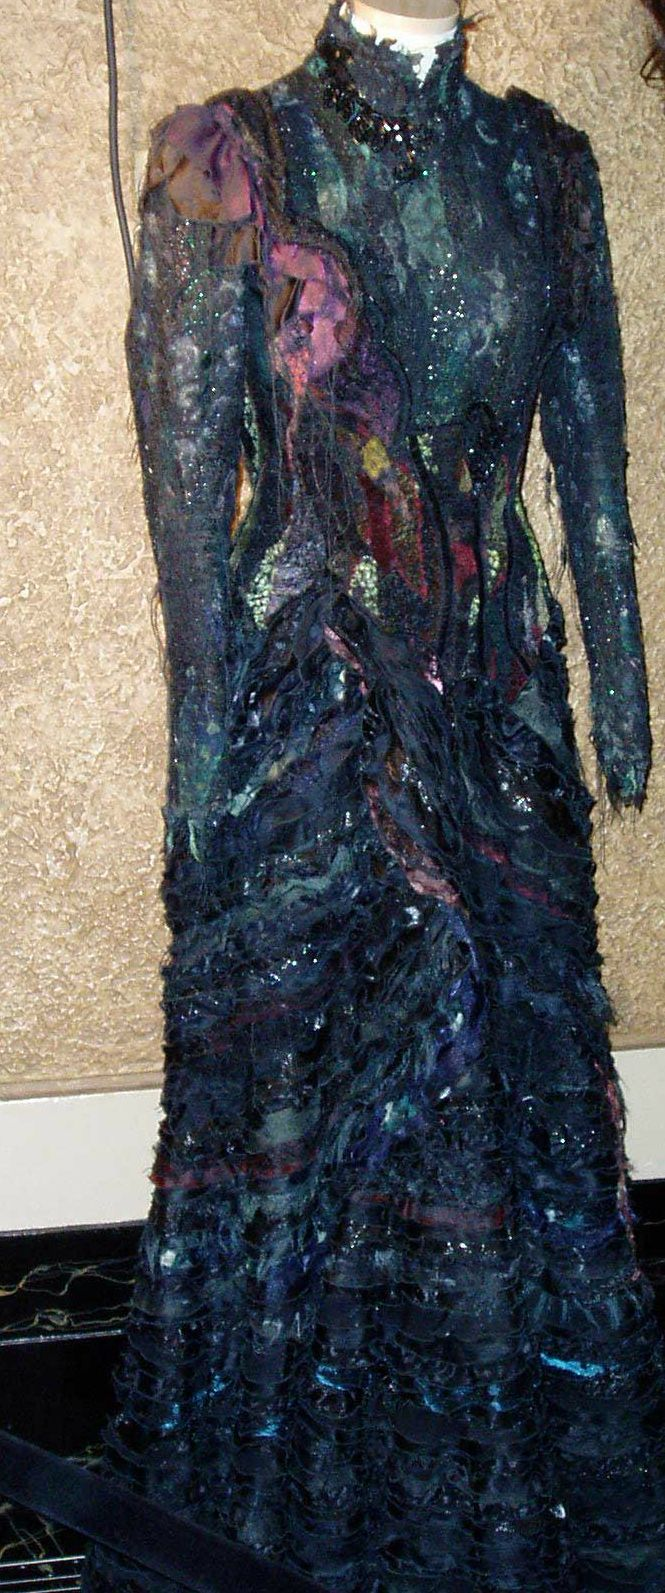 *swoon* Elphaba's costume in act 2 of Wicked will be forever gorgeous